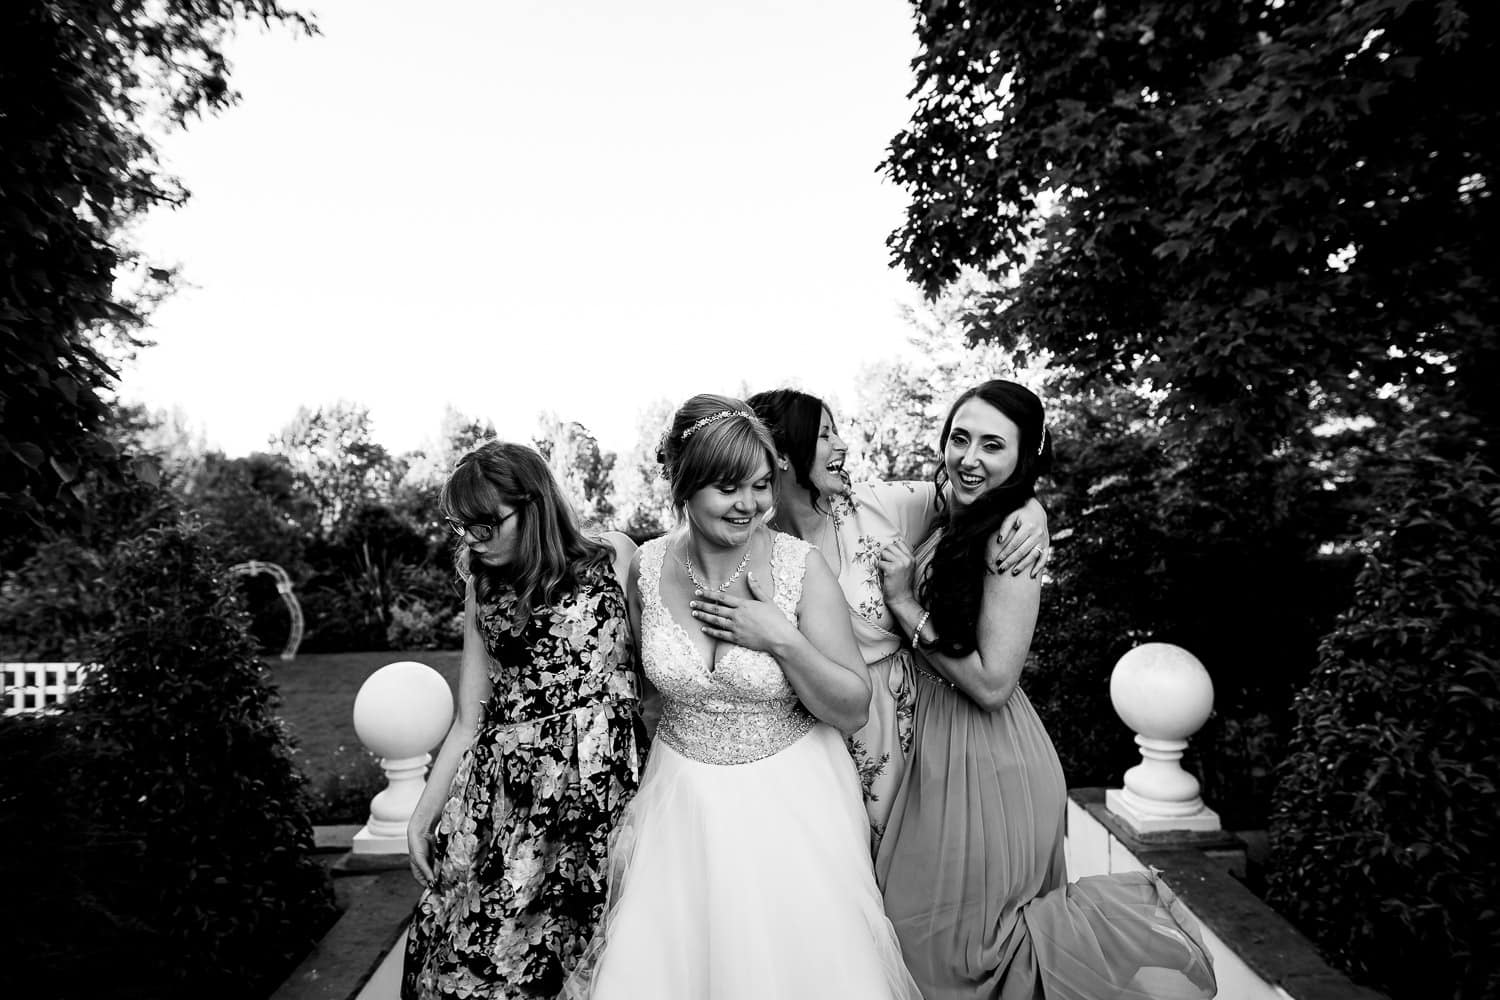 Warwick House Wedding Photography with beautiful bridal party in warwickshire